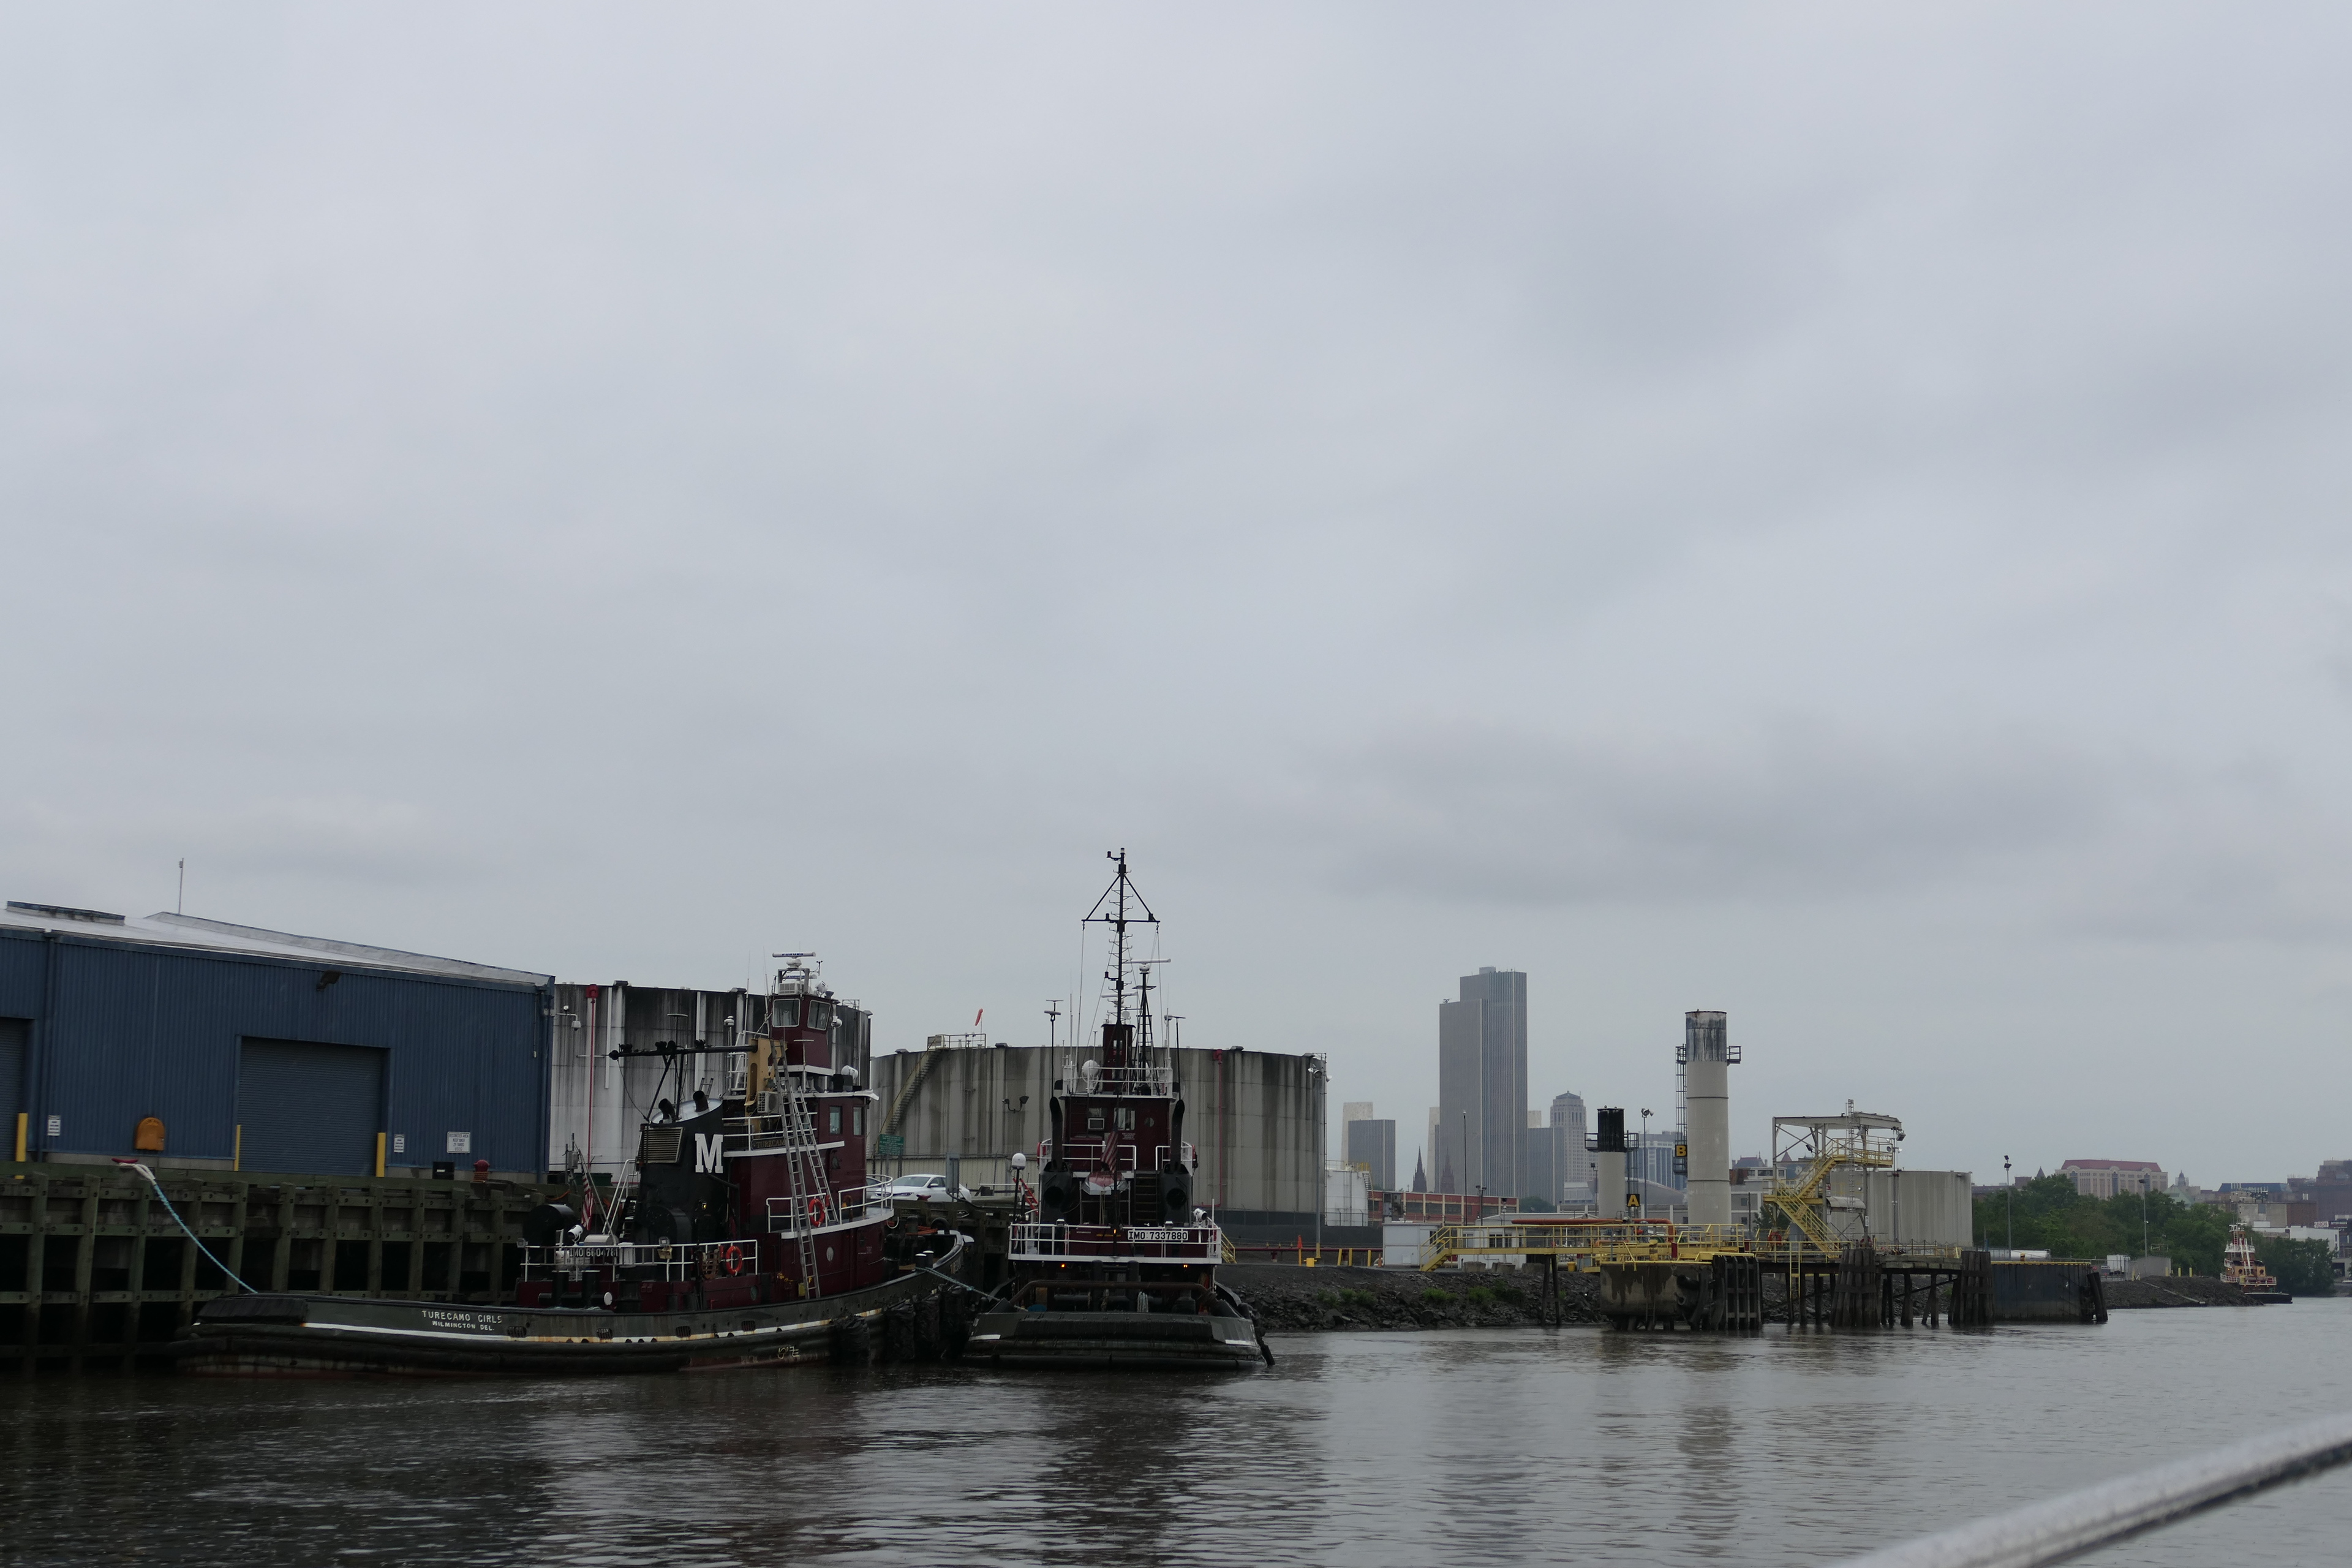 Industrial waterfront